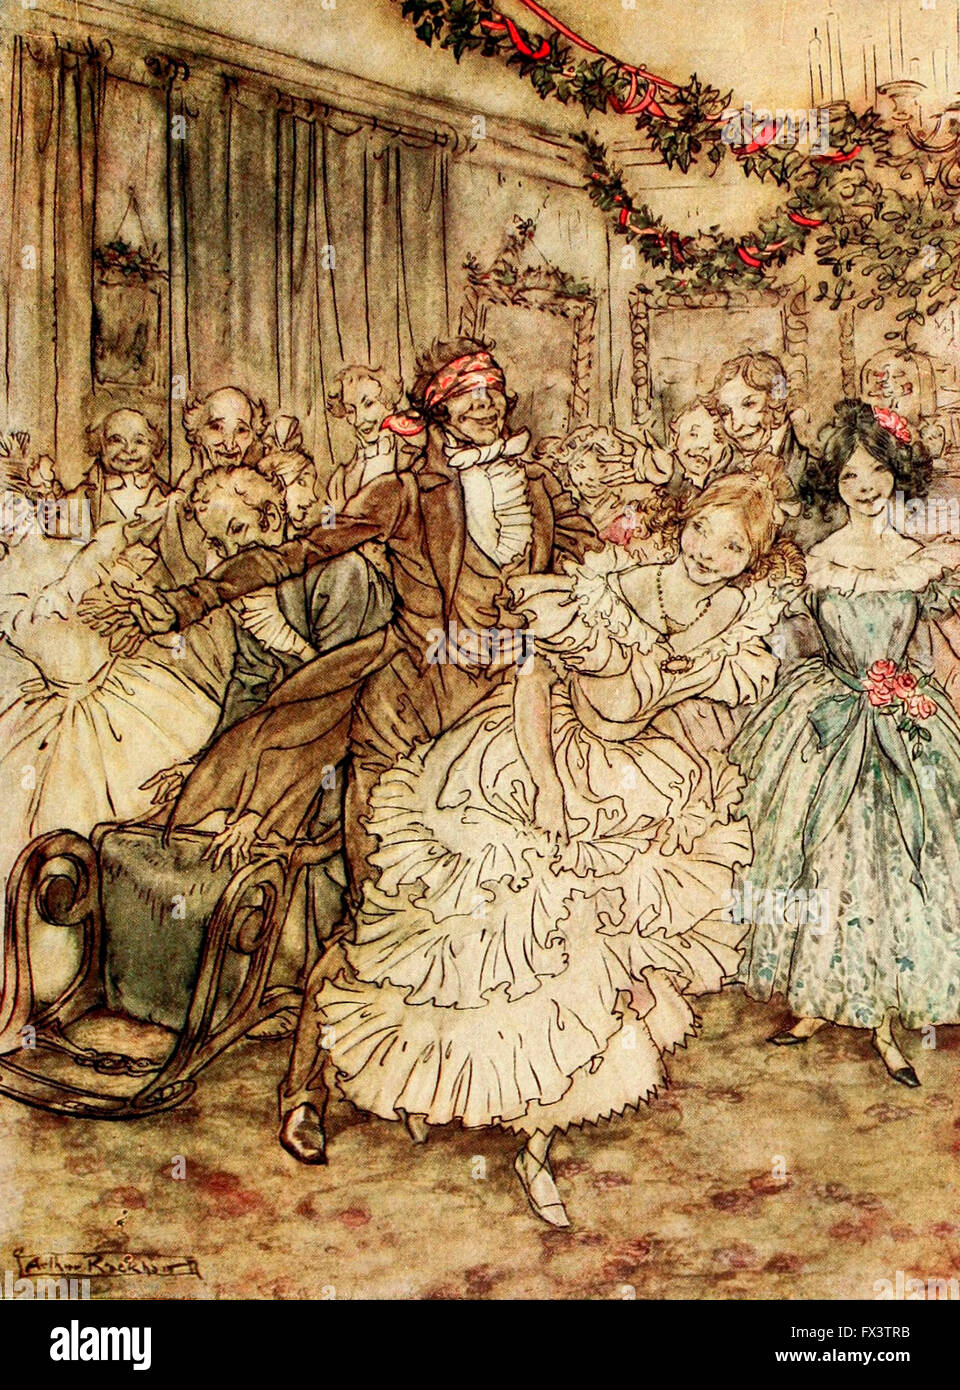 The way he went after the plump sister in the lace tucker!  A scene from A Christmas Carol - Stock Image